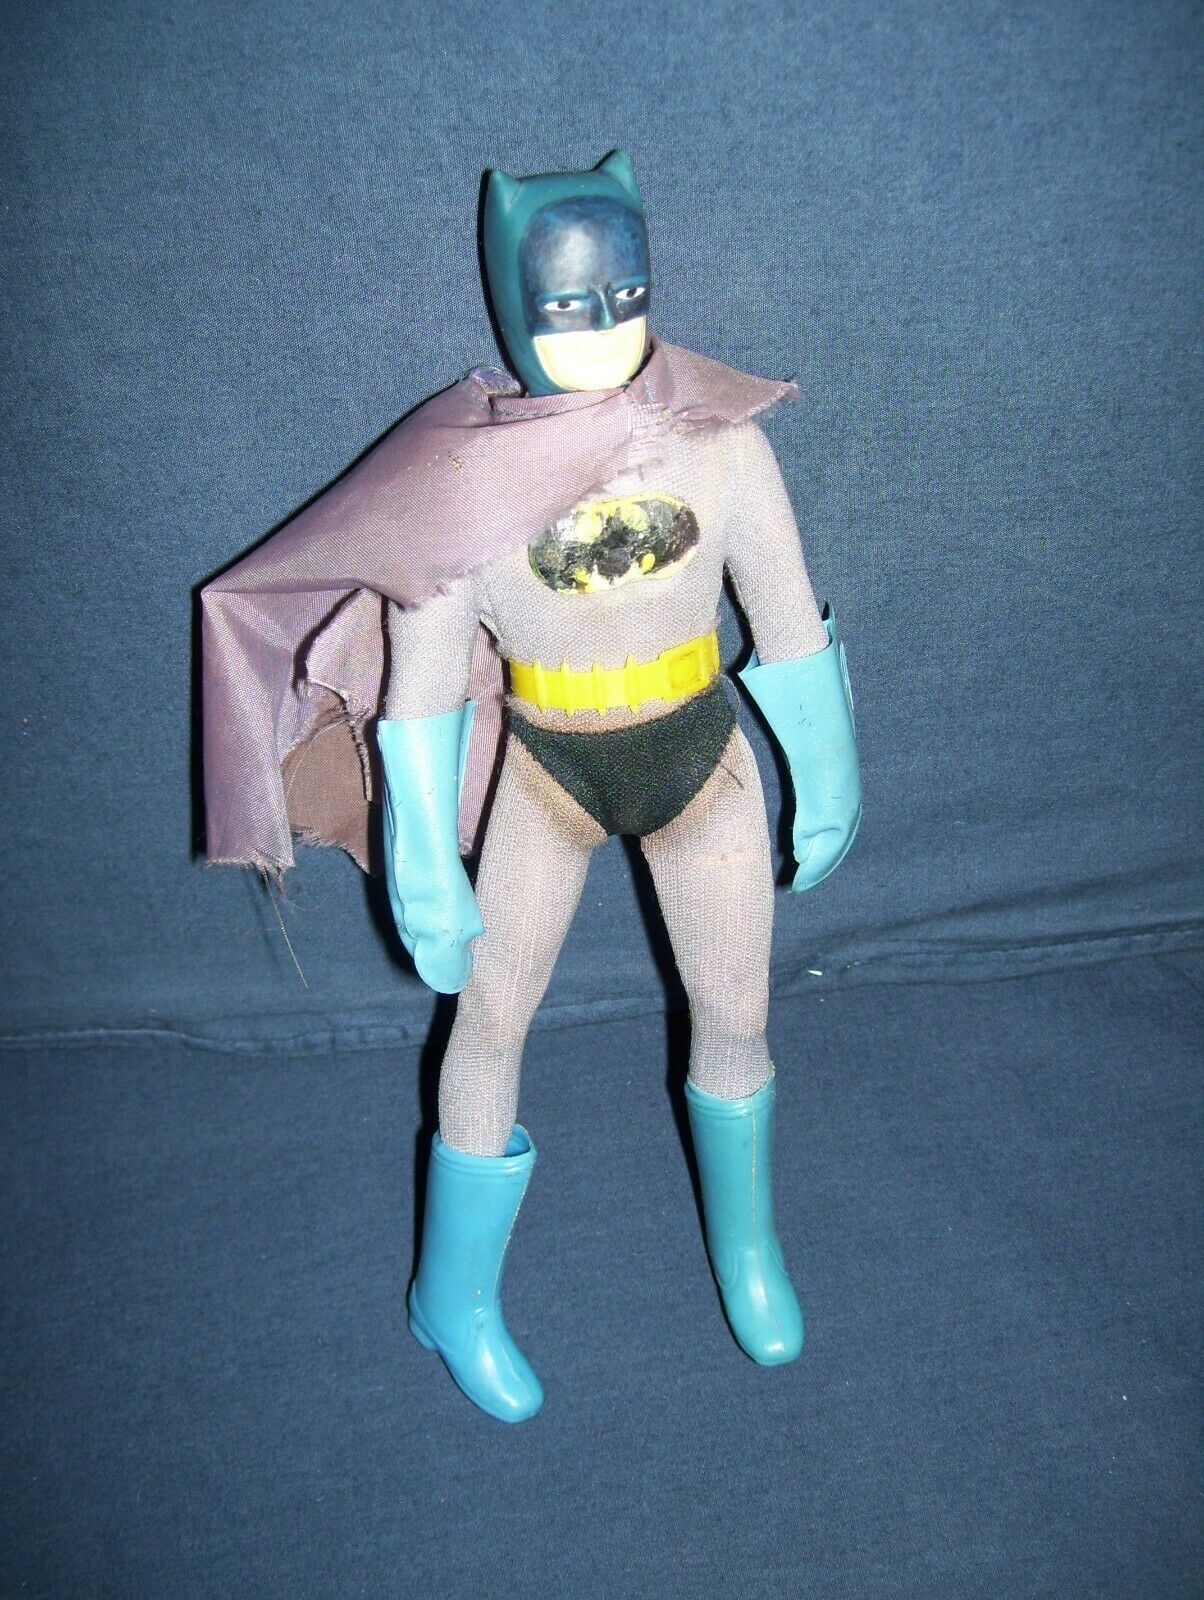 Mego Batuomo 1972 Broken with some Accessories